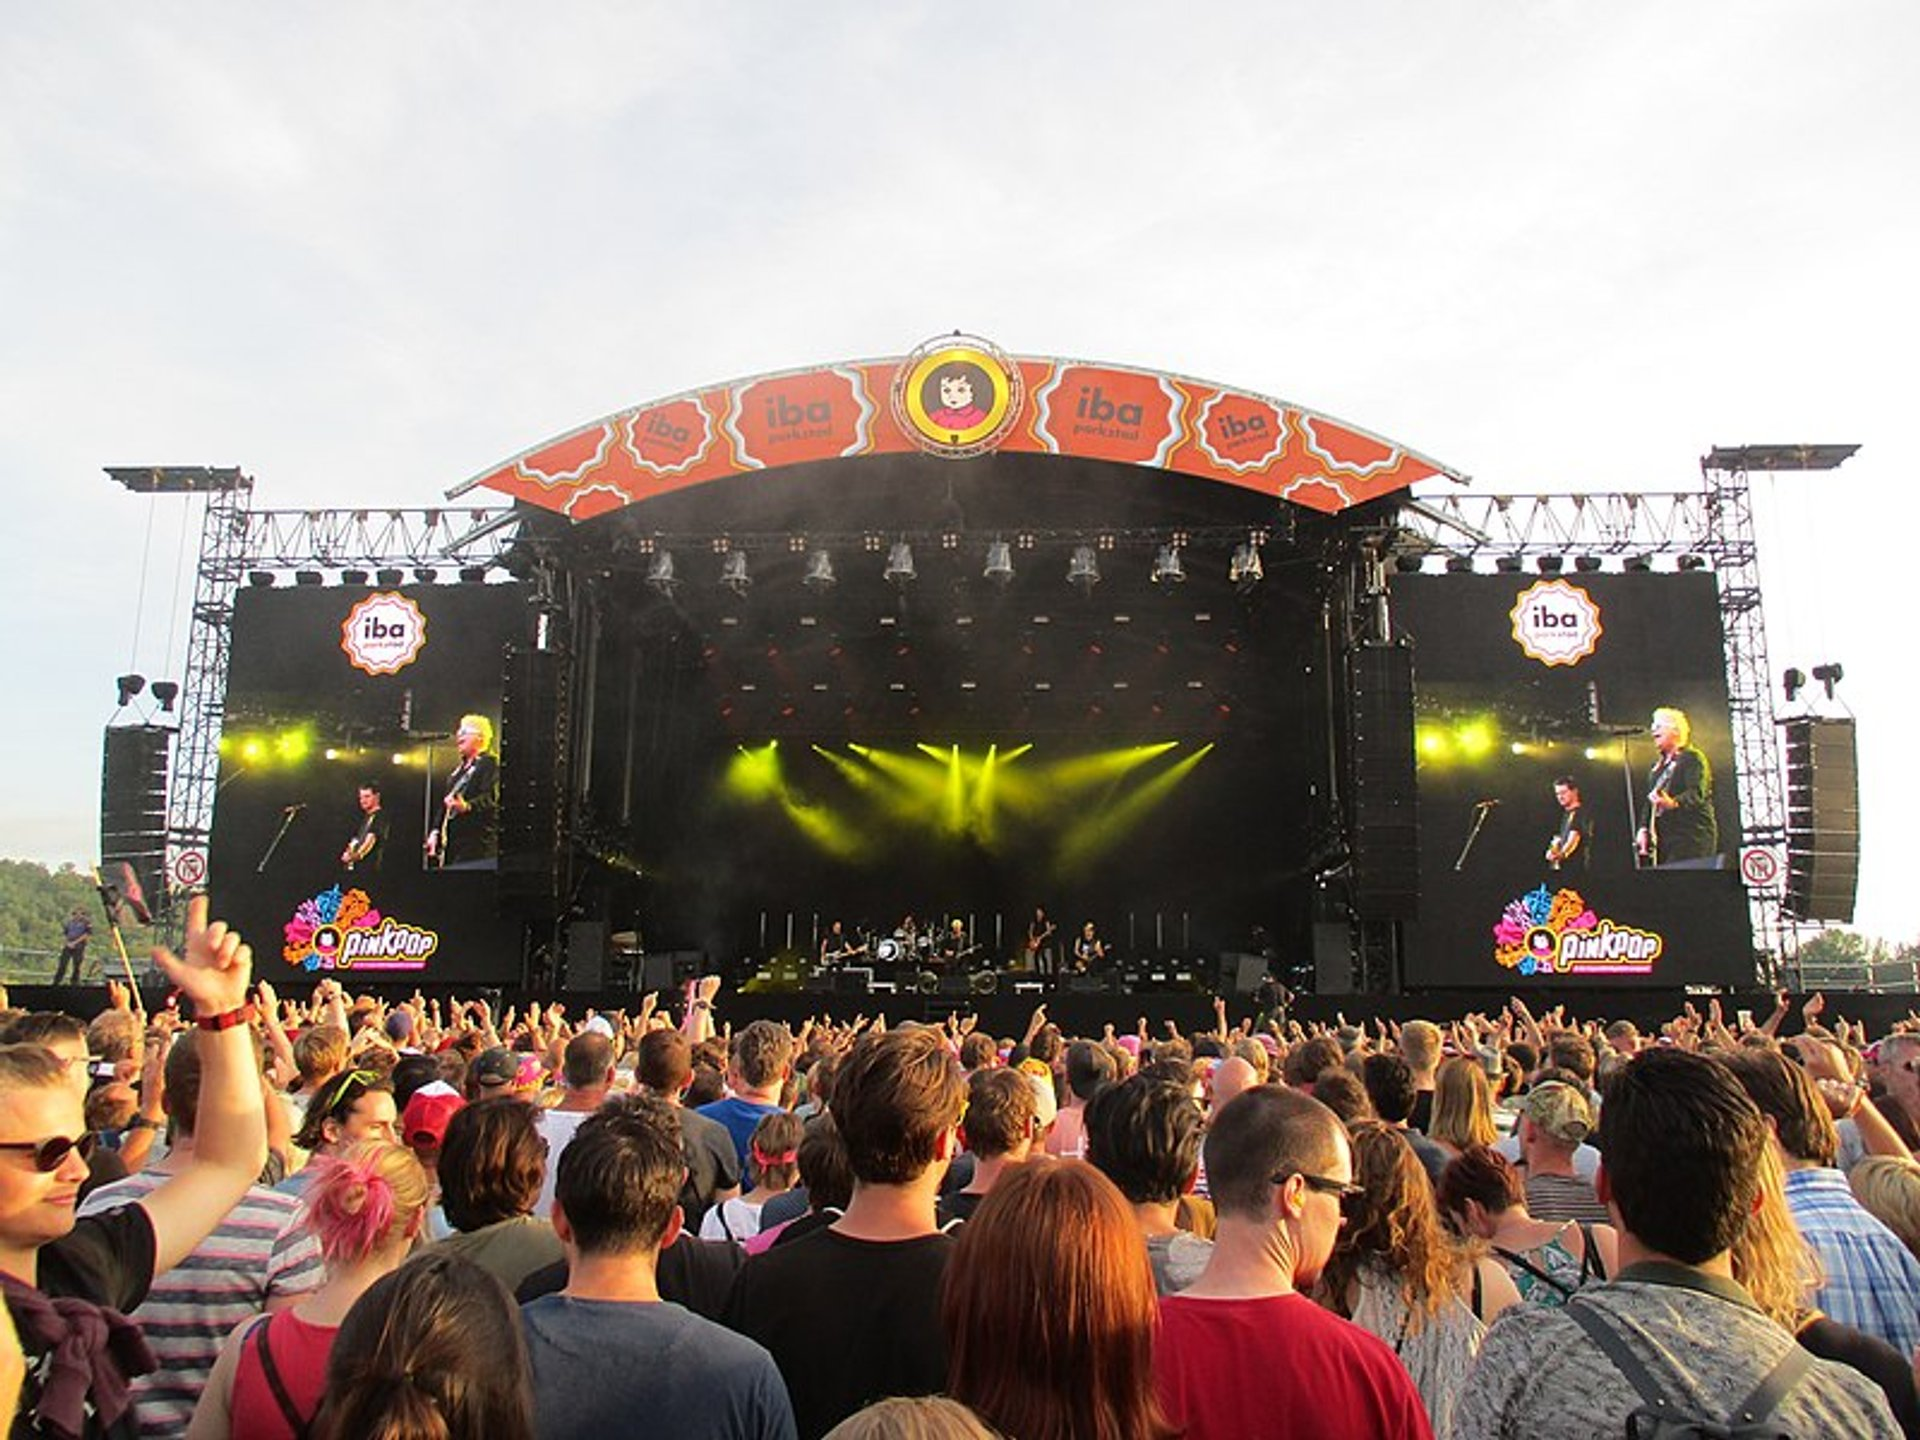 Pinkpop Festival in The Netherlands - Best Time